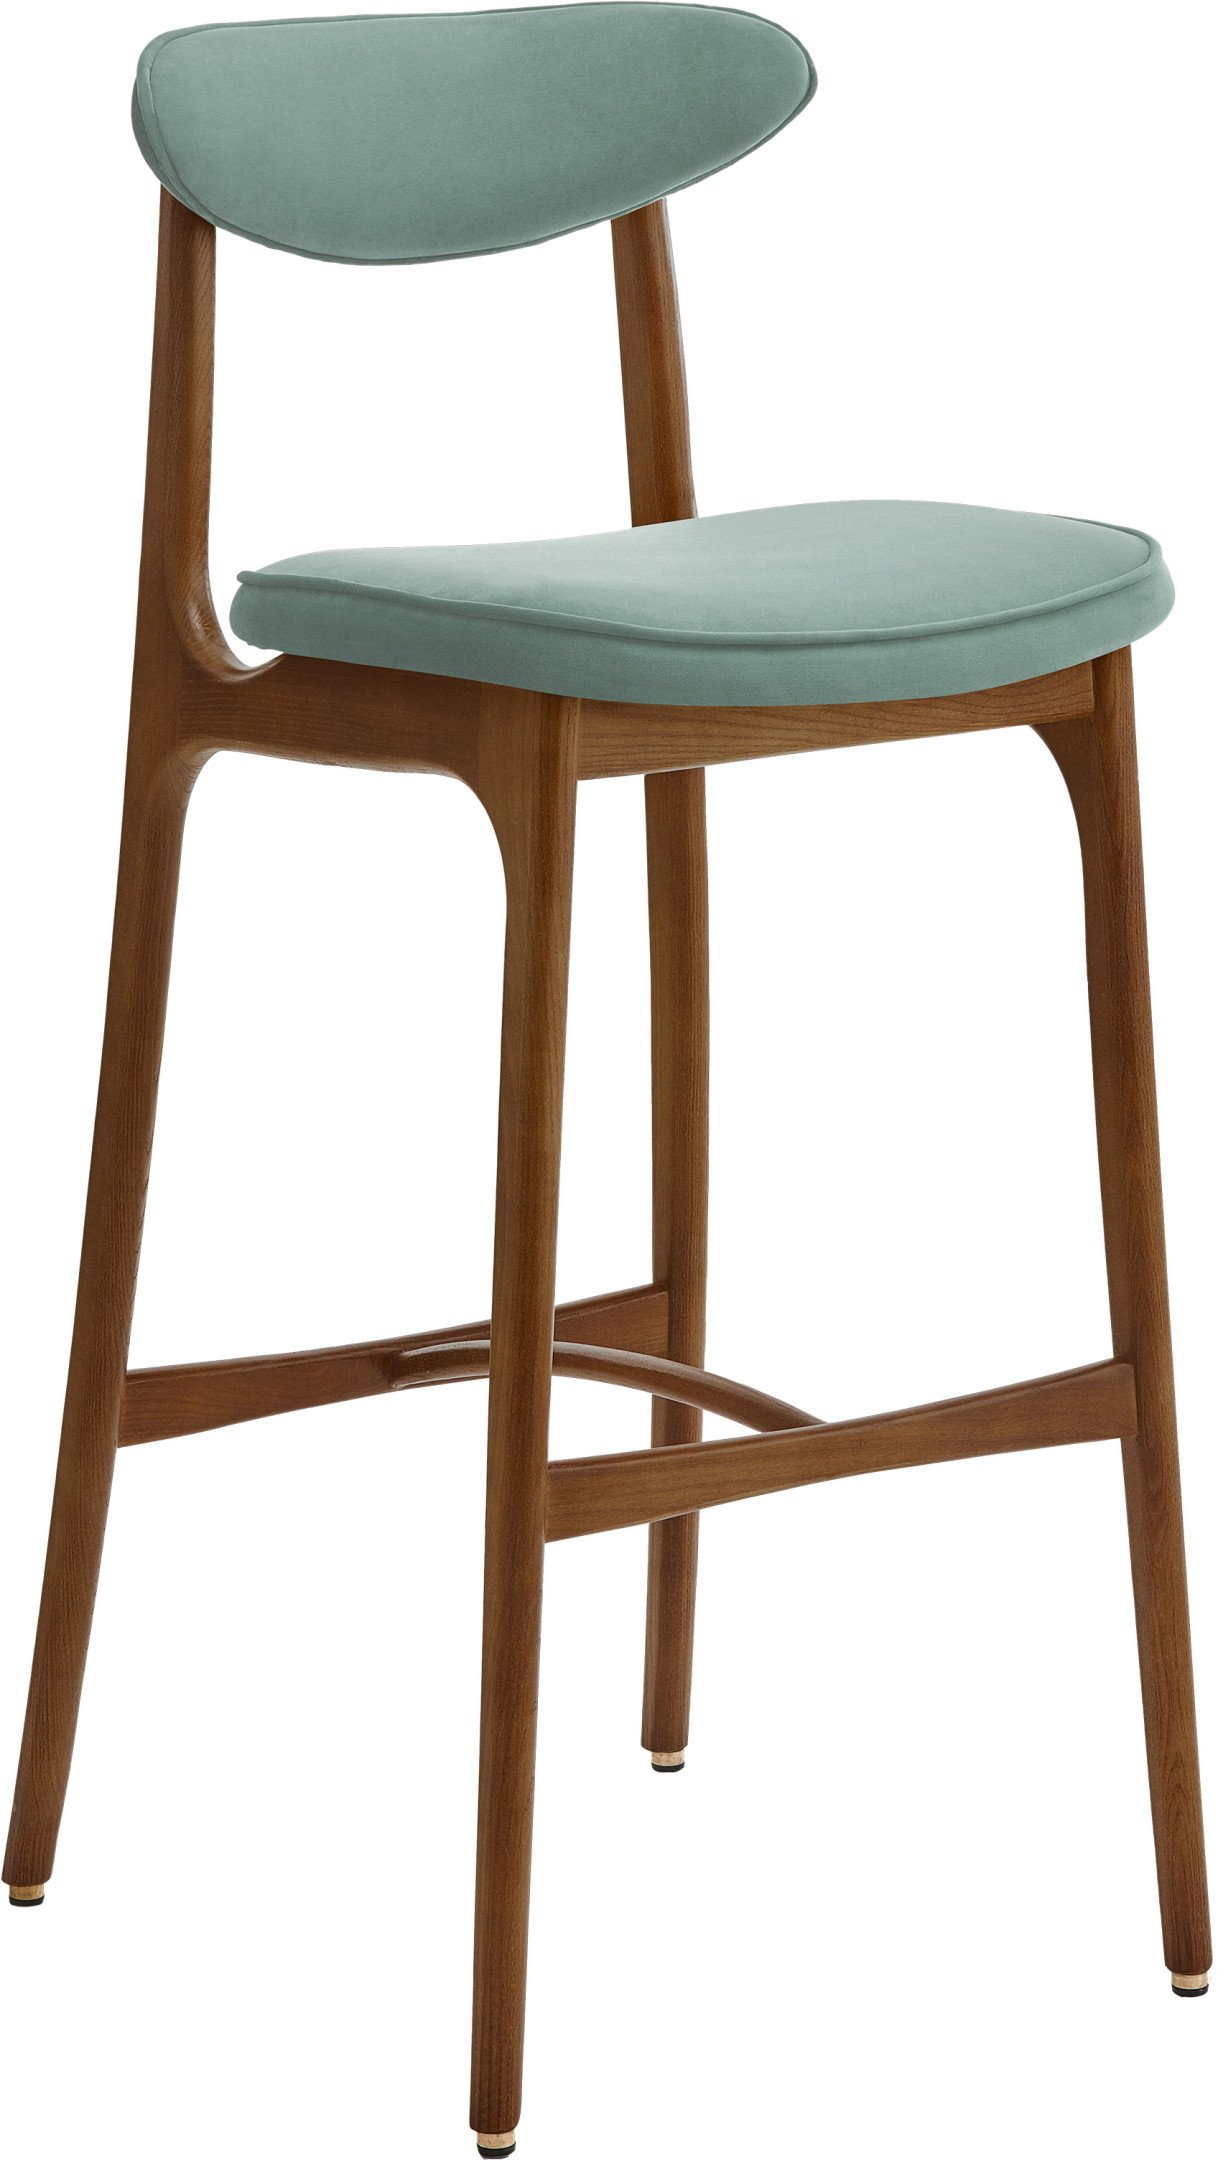 200-190 Bar Stool 75 Velvet Mint, 366 Concept